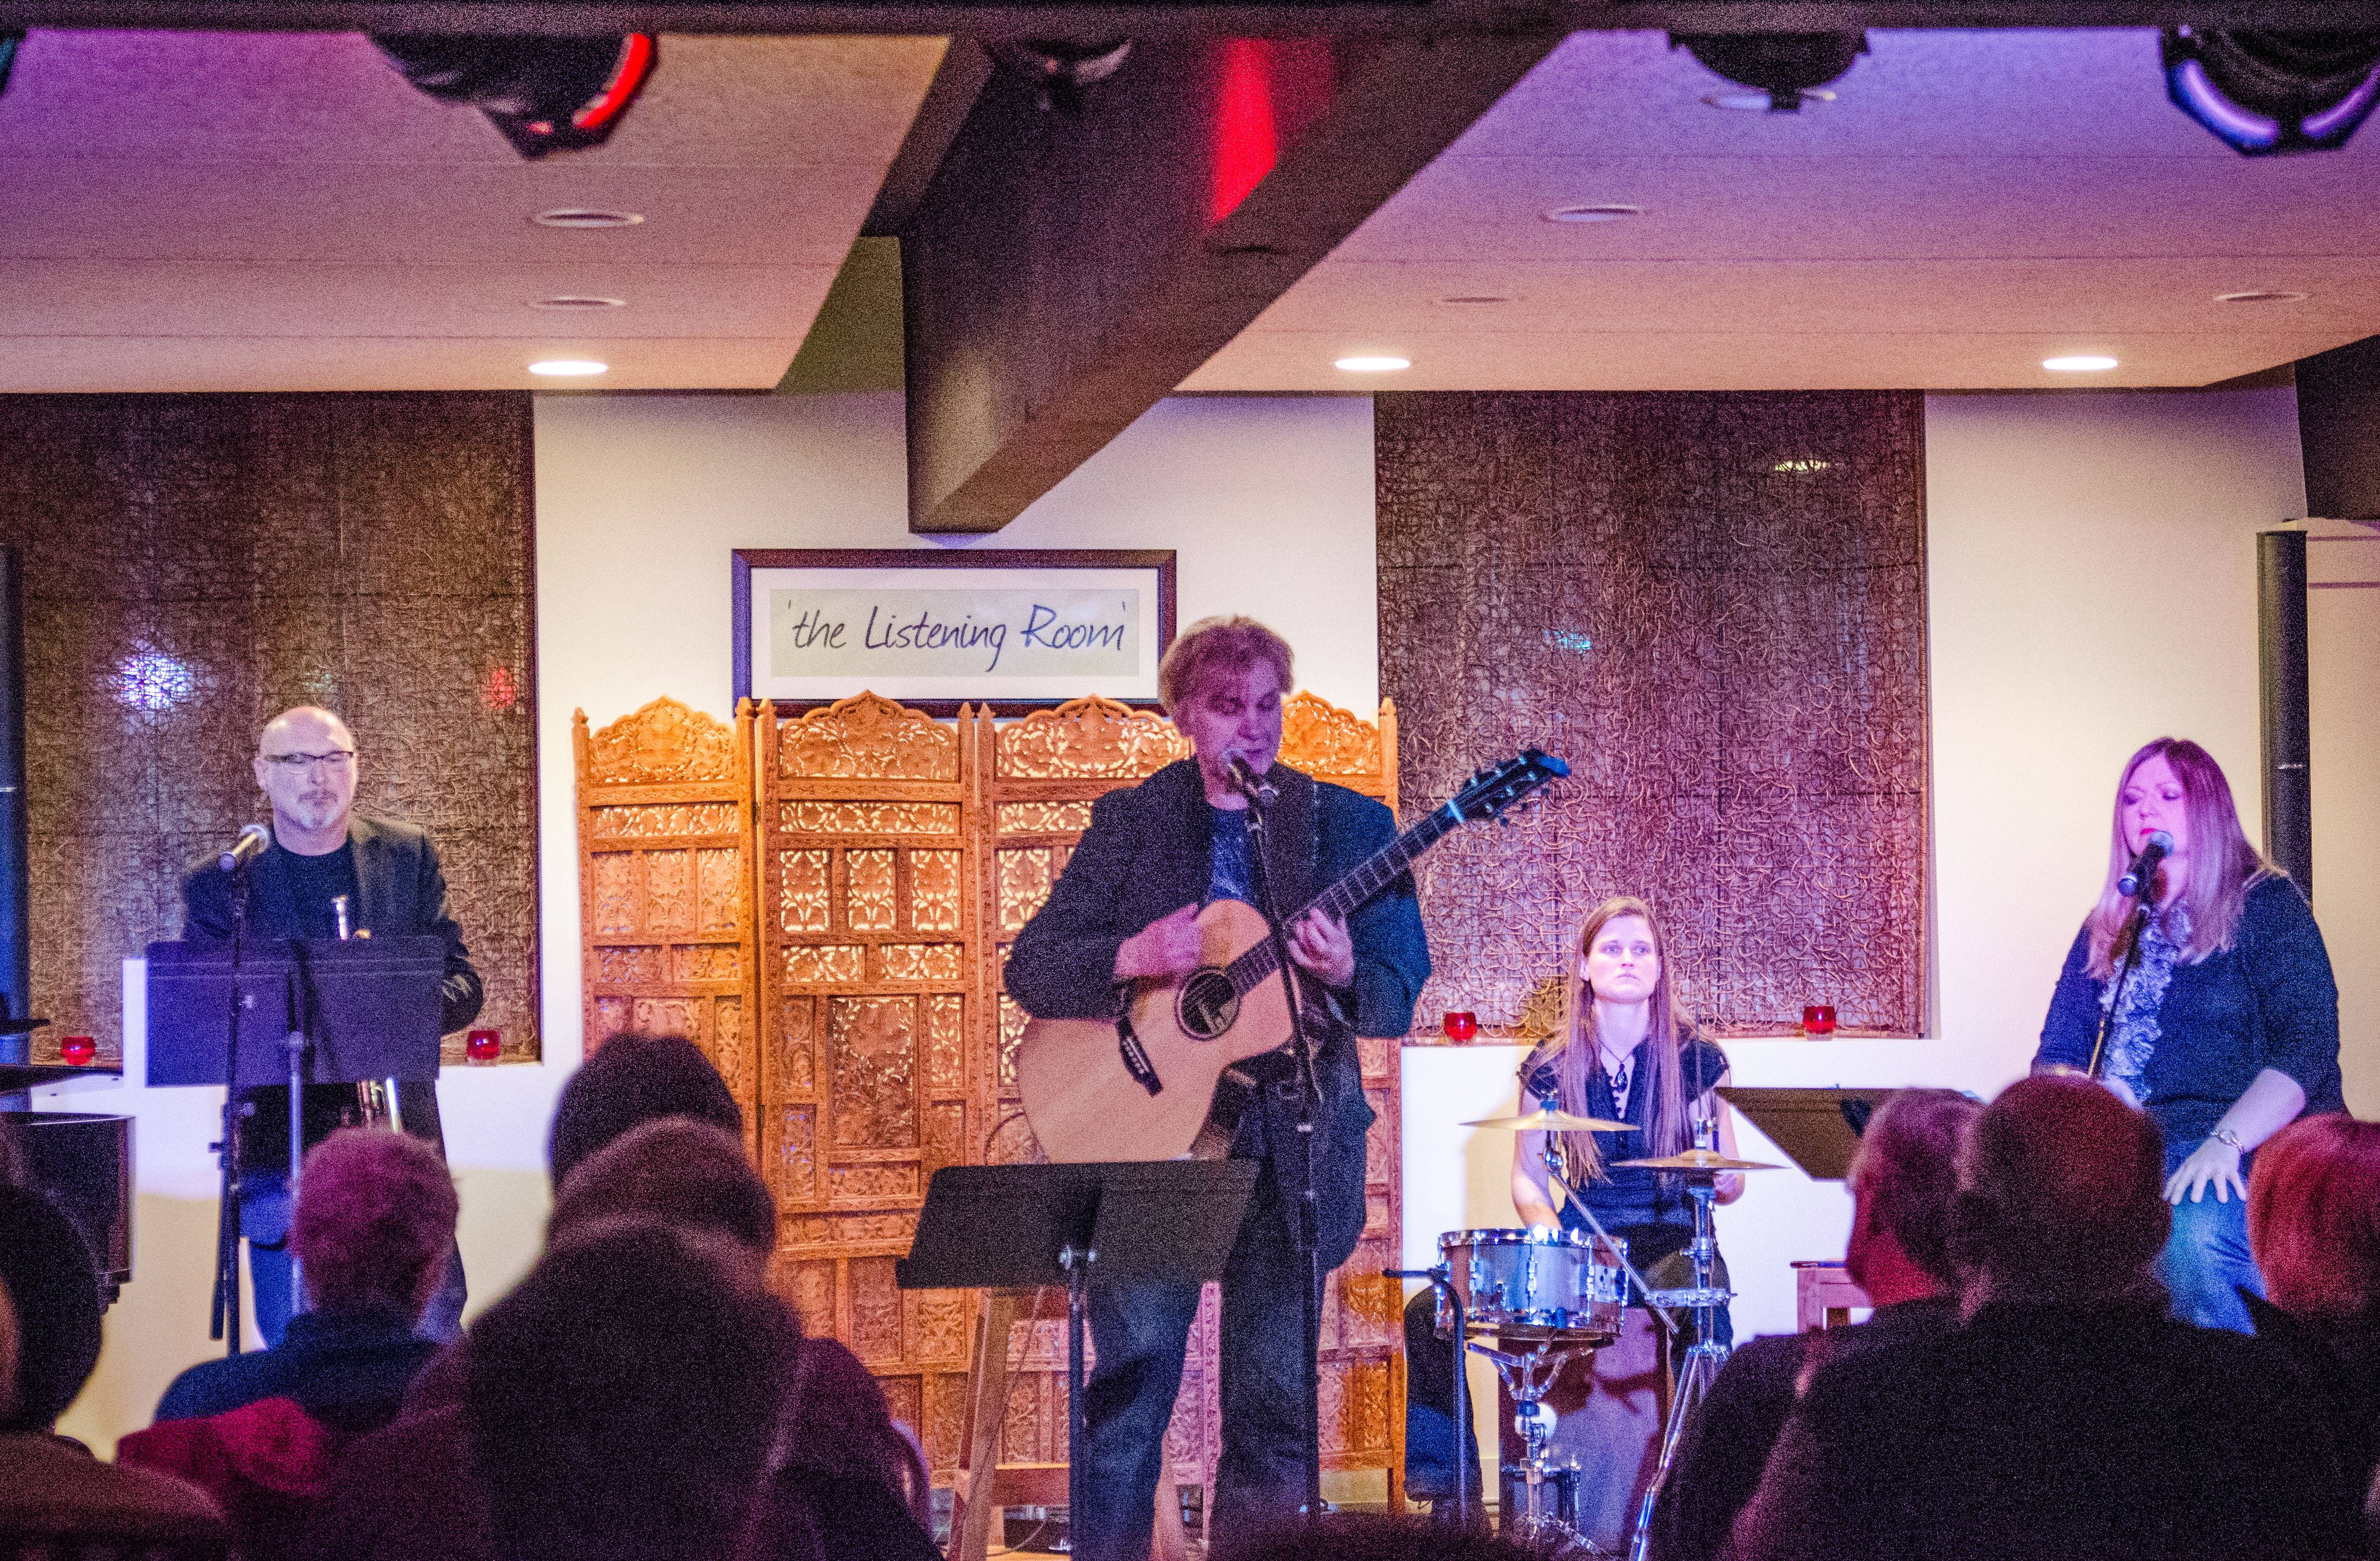 Musician Peter Calo was joined in the Listening Room at Lakeside Legacy Arts Park in Crystal Lake by fellow musicians Cassandra Vohs-Demann, Roger Reupert, and Meg Thomas on March 7.